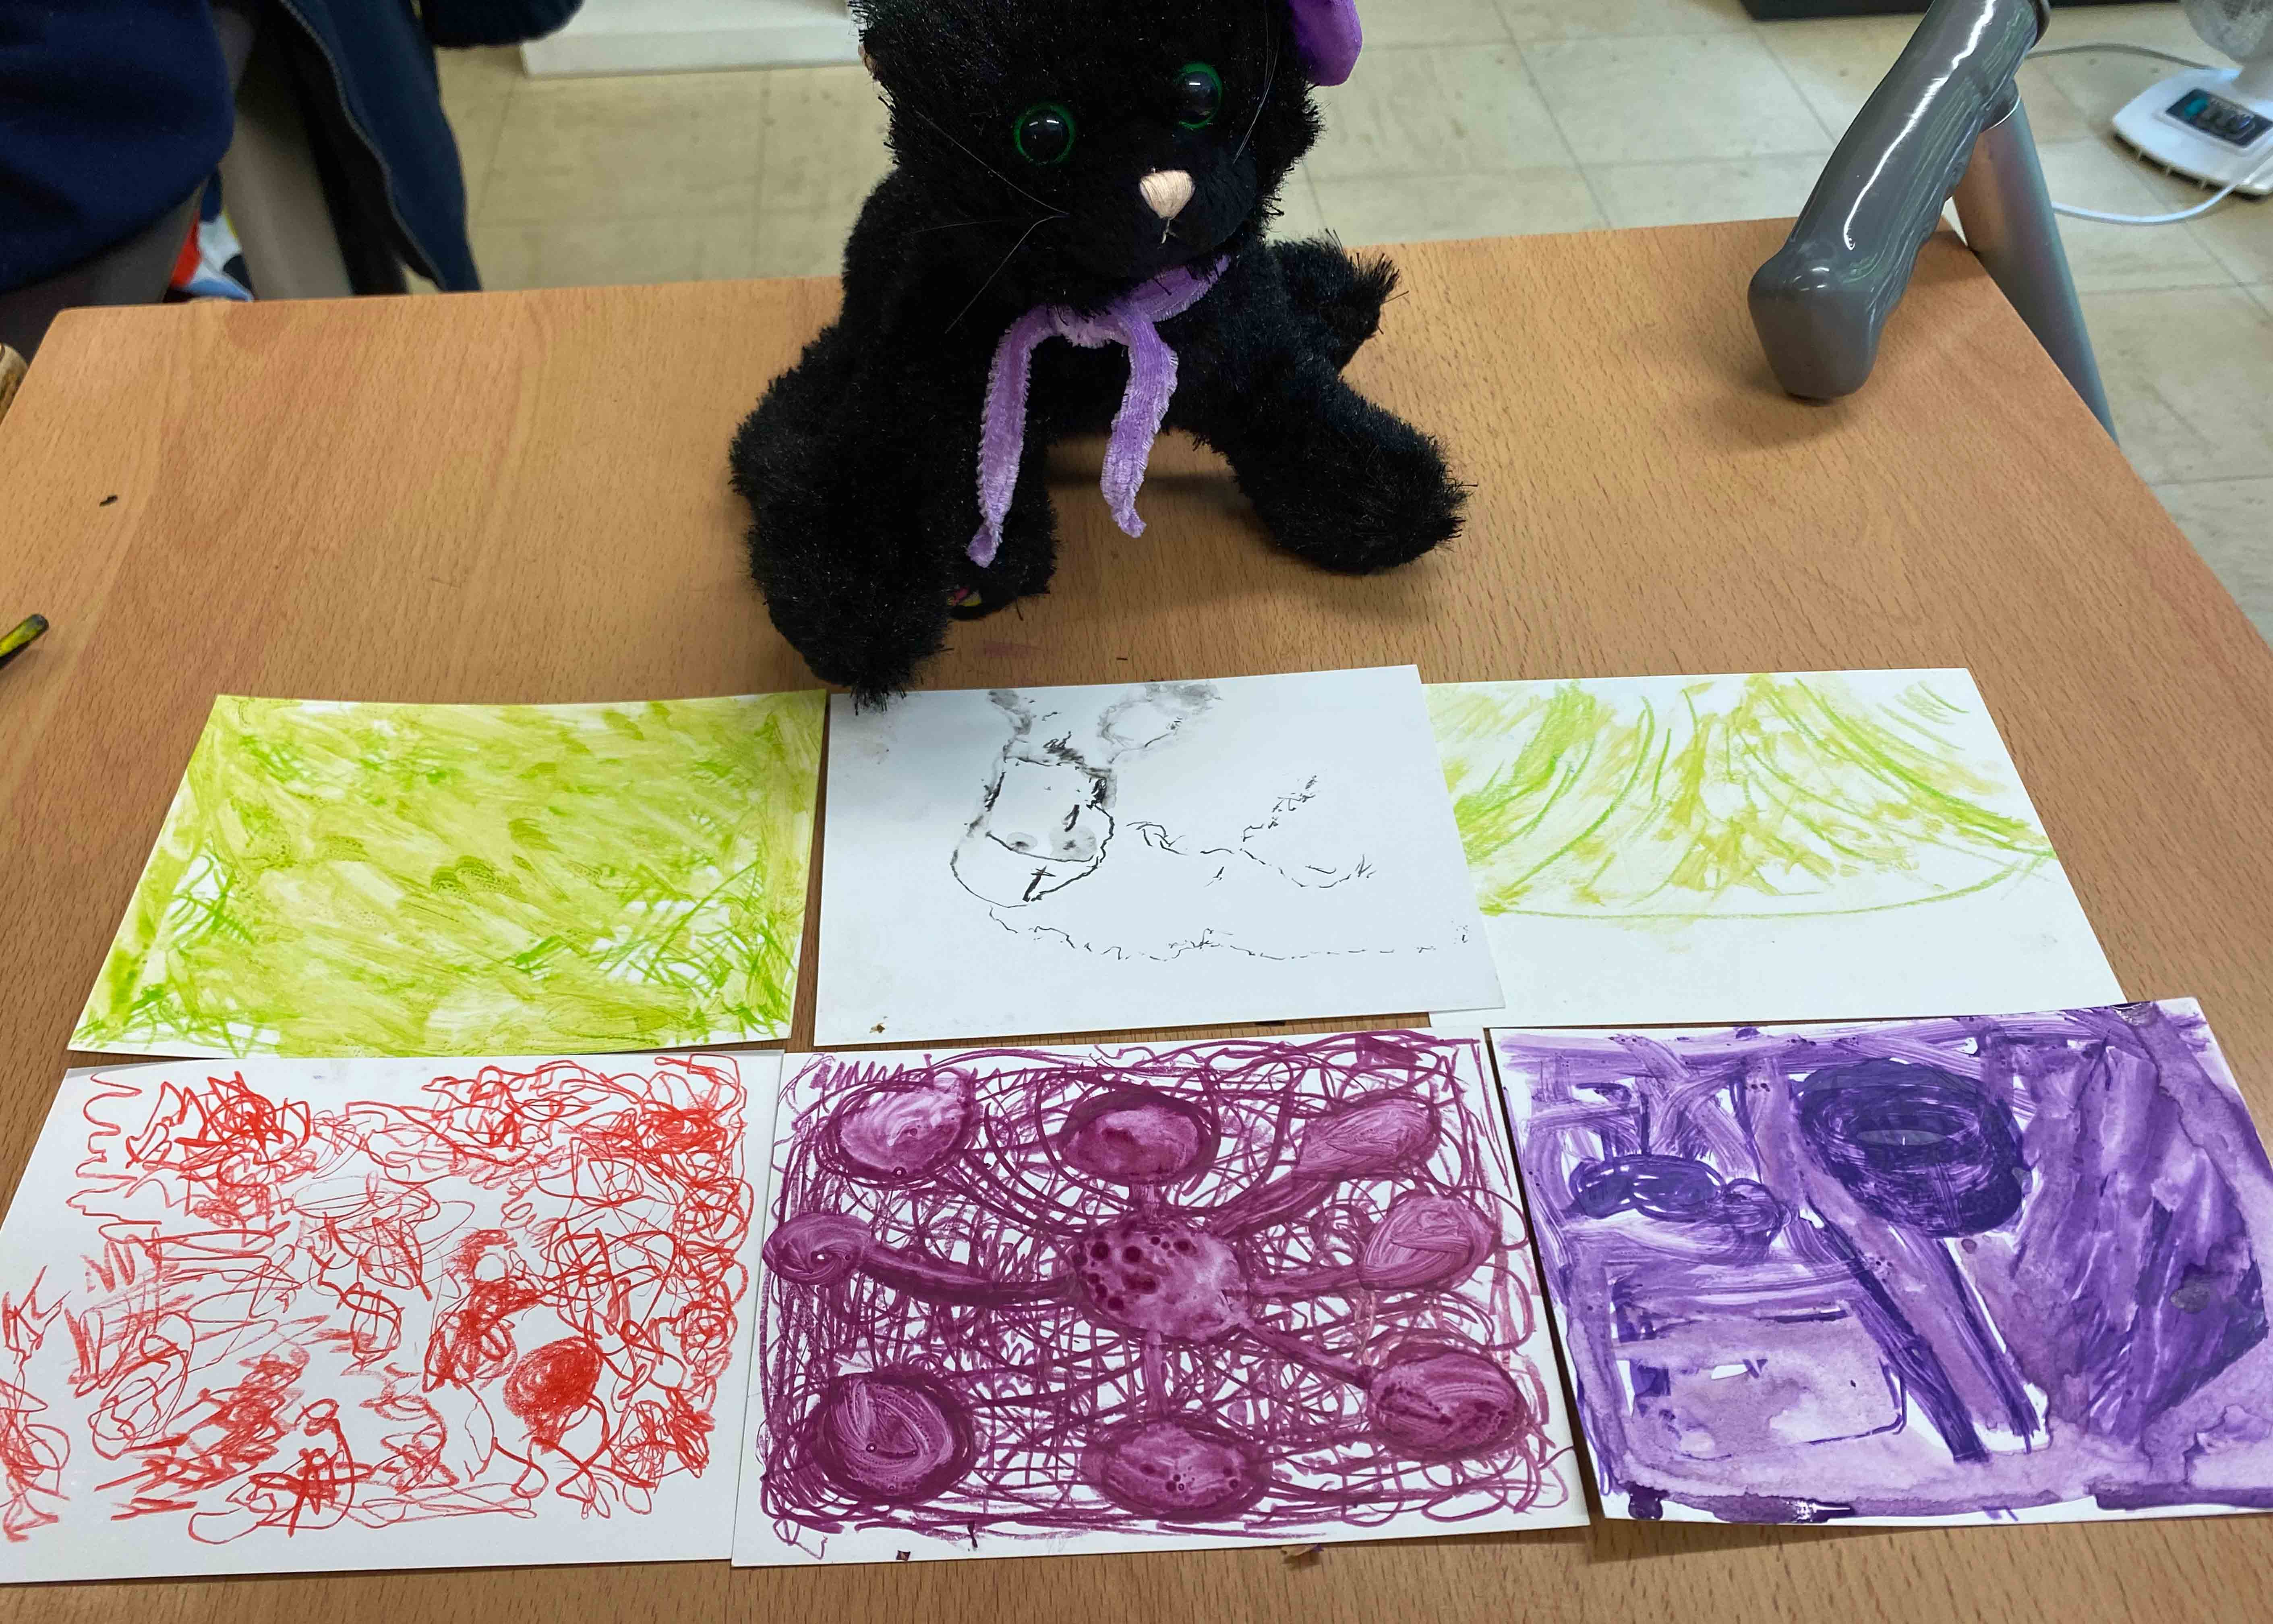 Expressive drawings and a toy cat